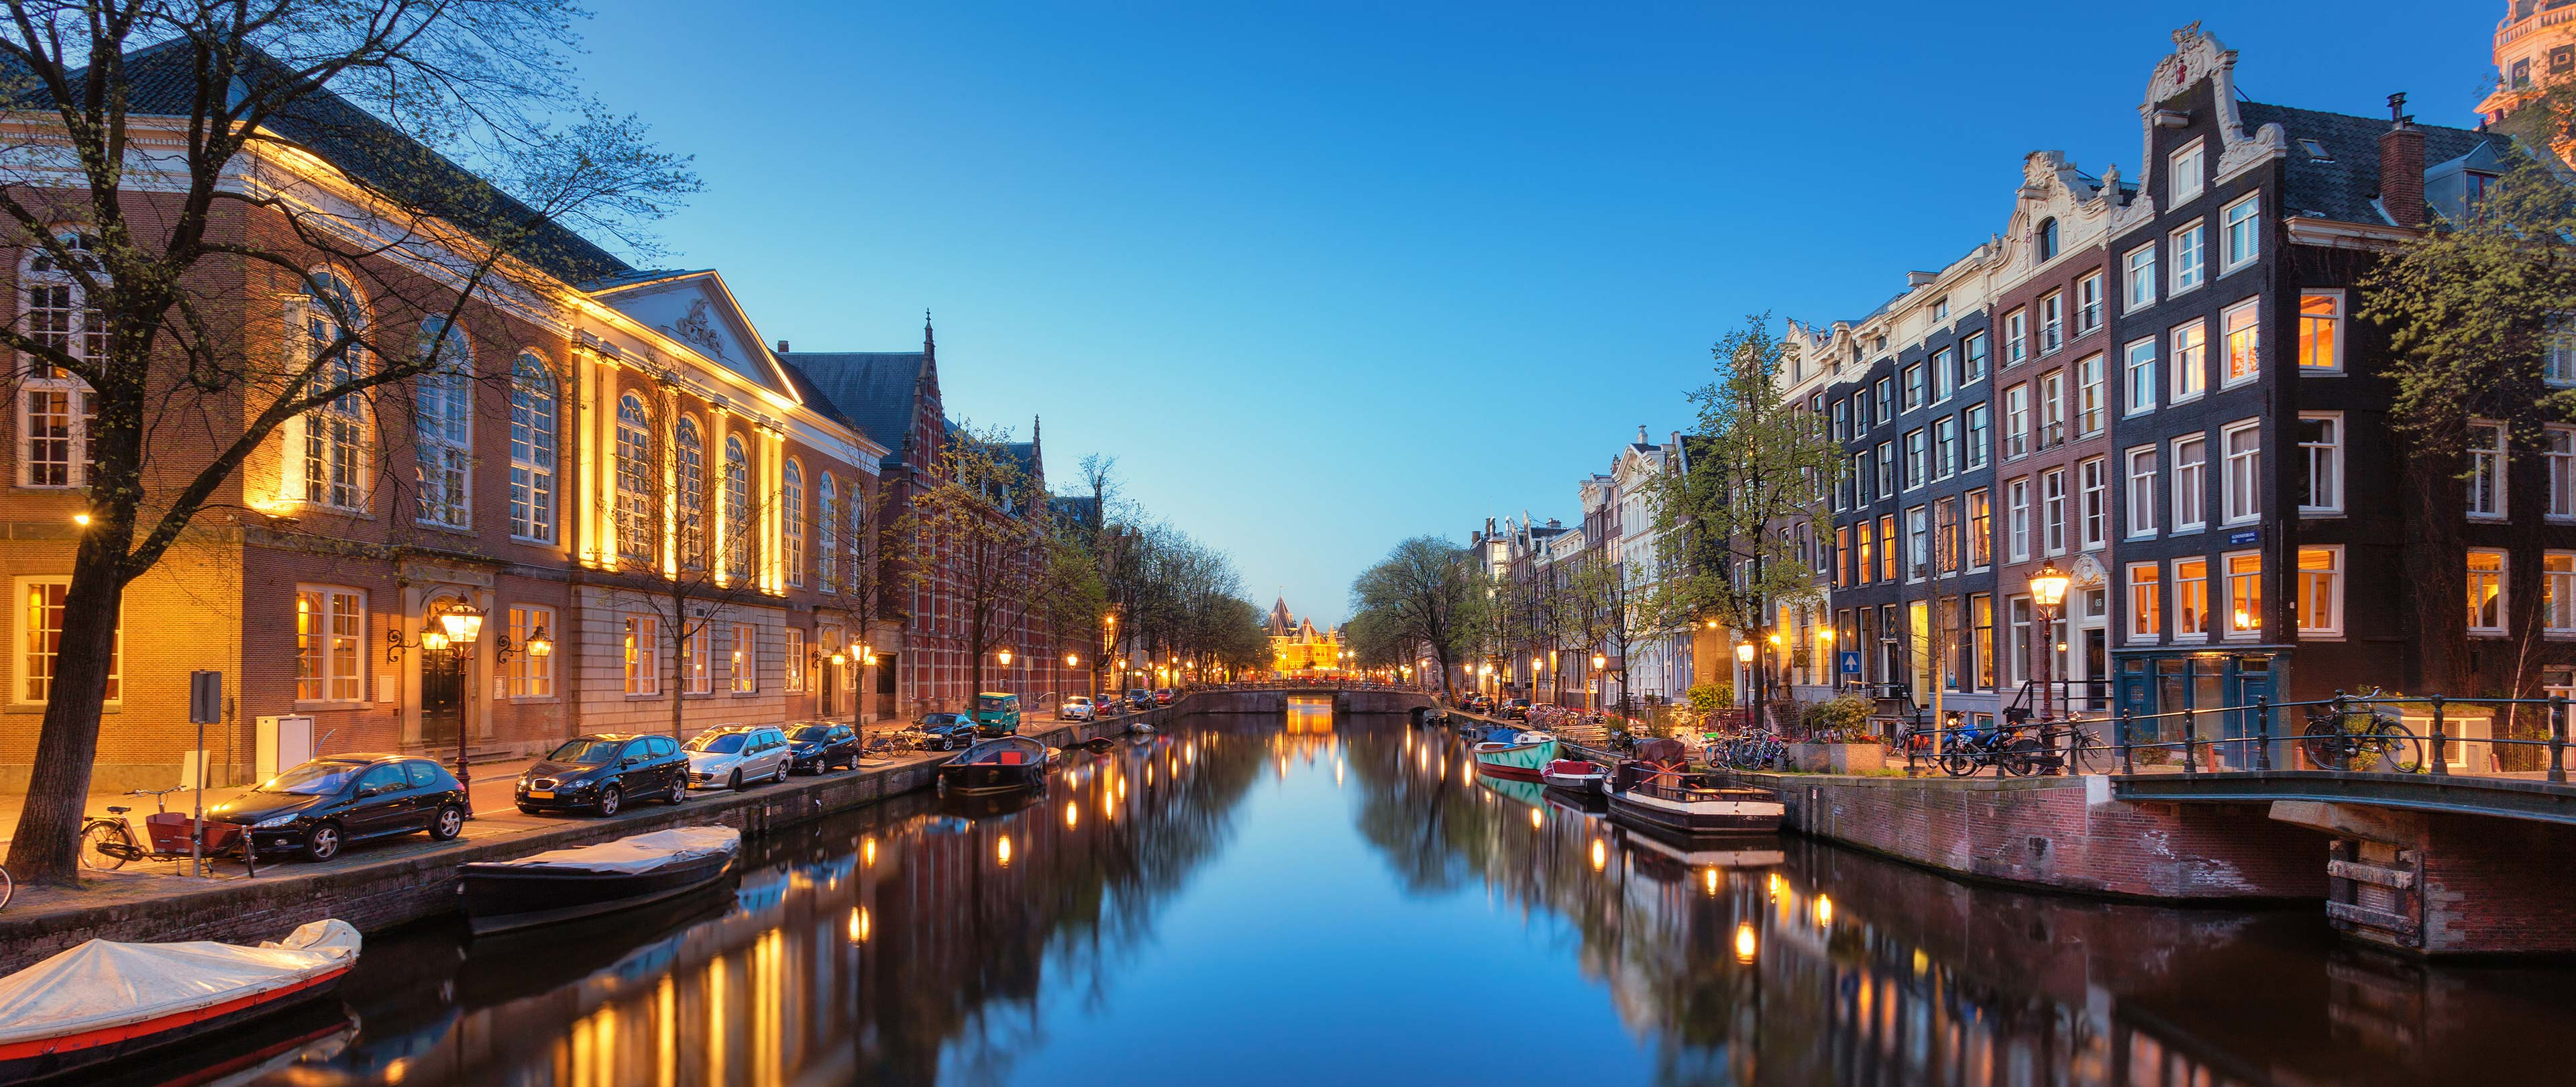 5 Budget Friendly Activities in Amsterdam